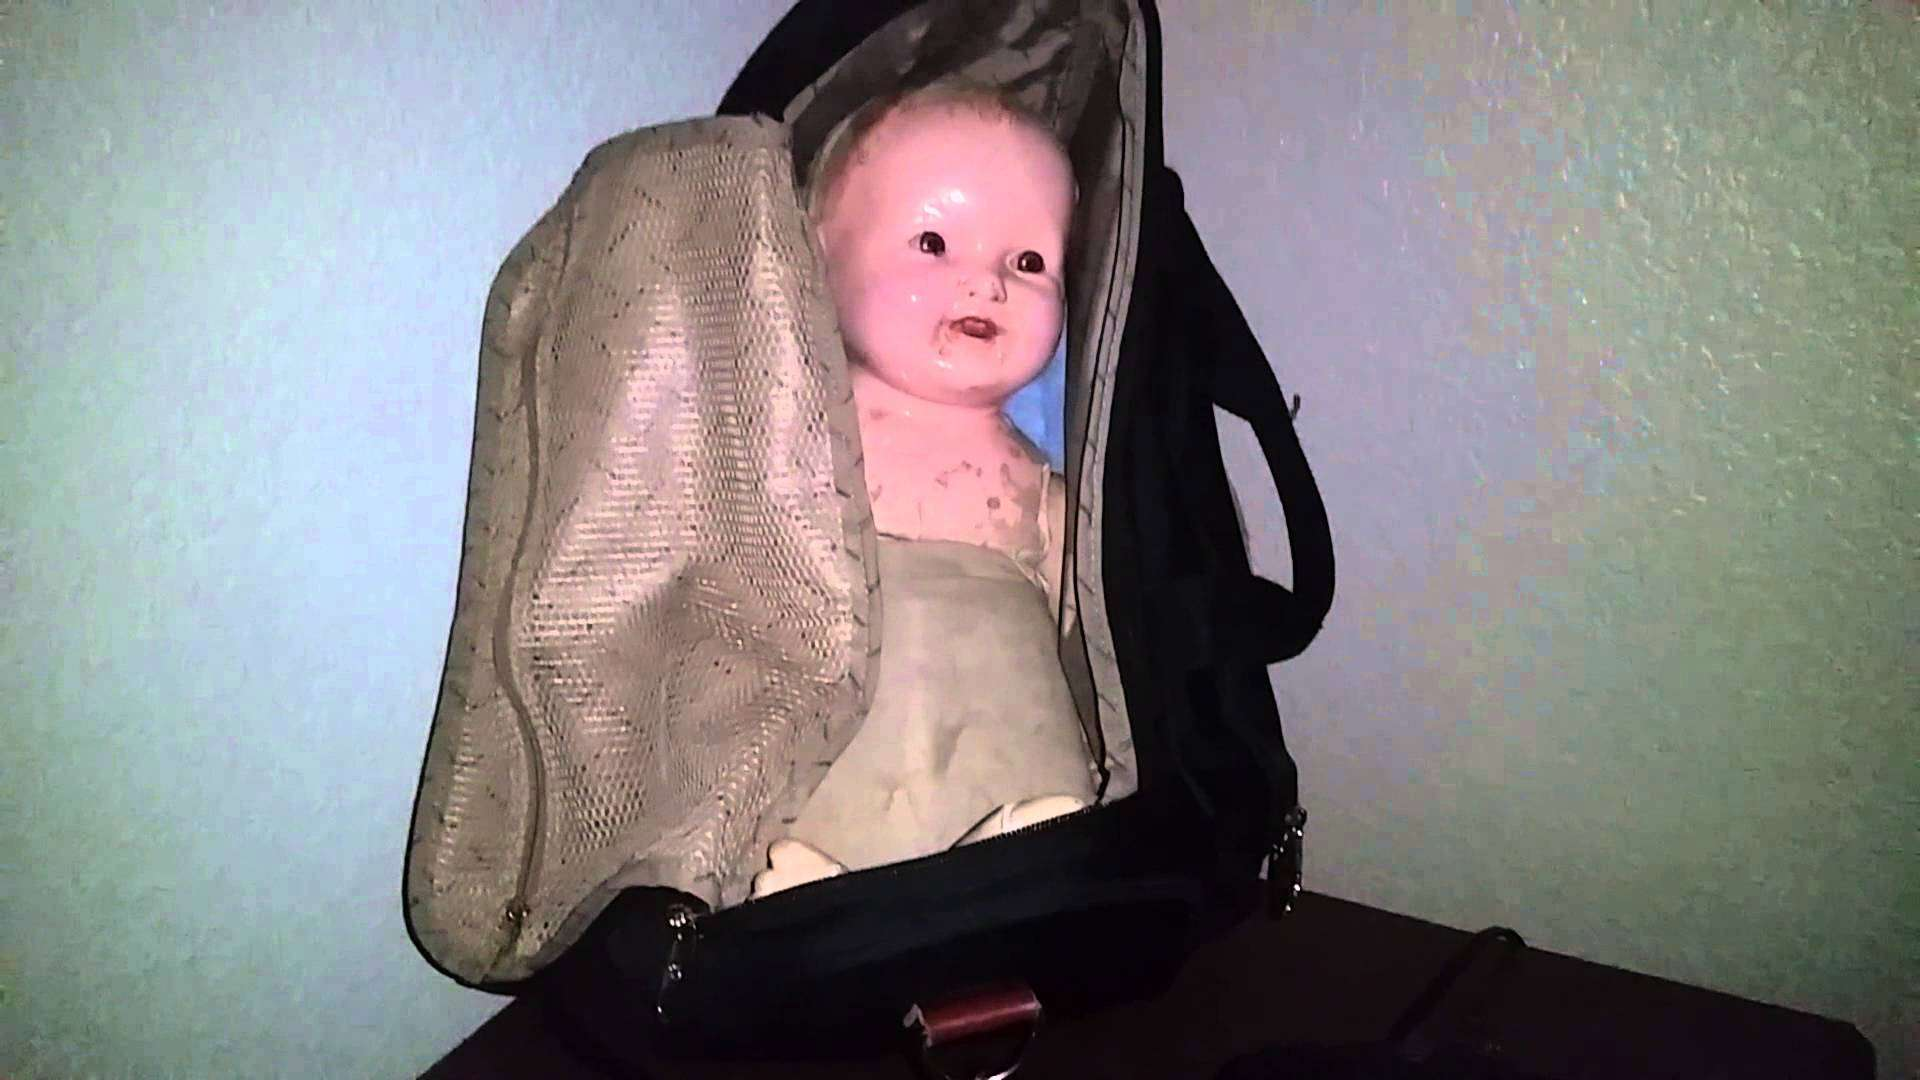 harold the haunted doll